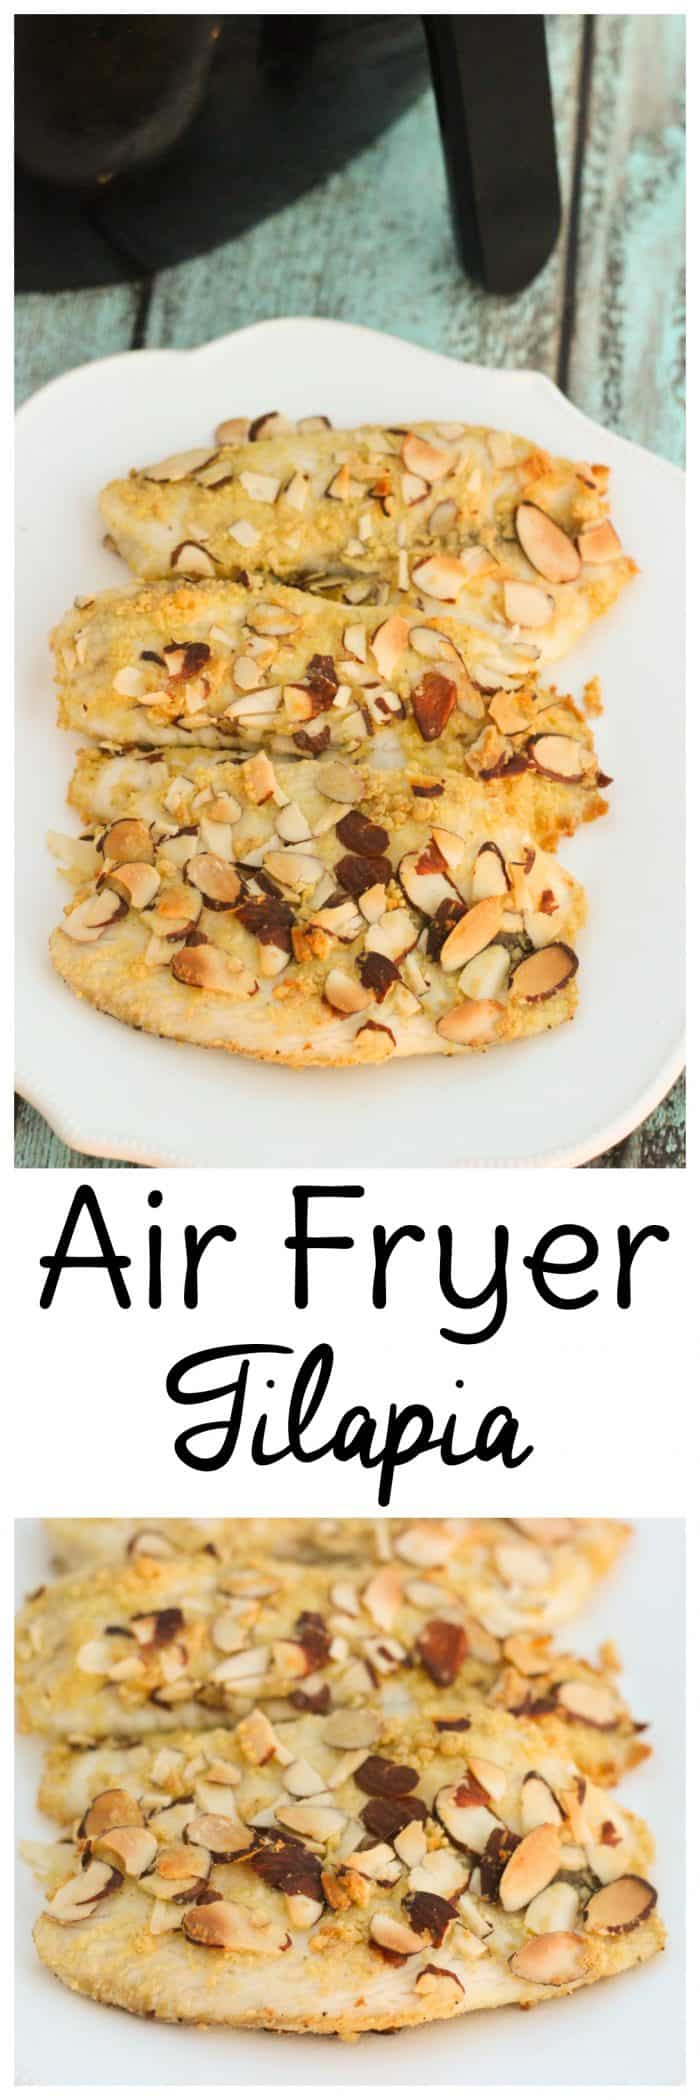 Air fryer fish tends to come out with a perfect, flaky texture in a short amount of time. Try this air fryer tilapia recipe the next time you need to get a flavorful, nutritious dinner on the table quickly that's gluten-free and easily adaptable for <a href=